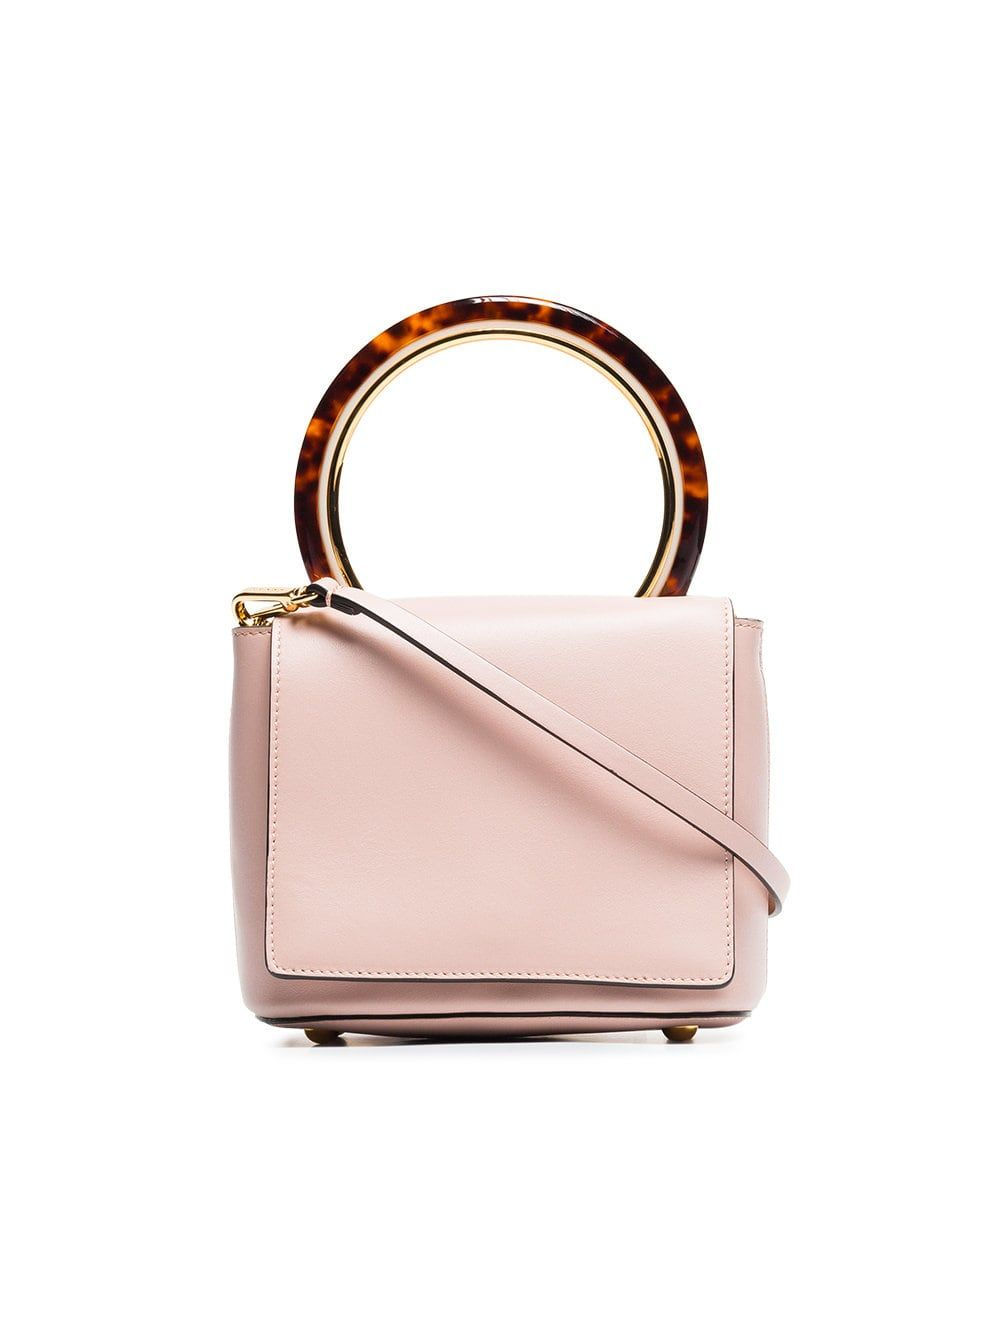 My Farfetch Black Friday Wish List Best Designer Handbags And Shoes To Invest In Mode Rsvp